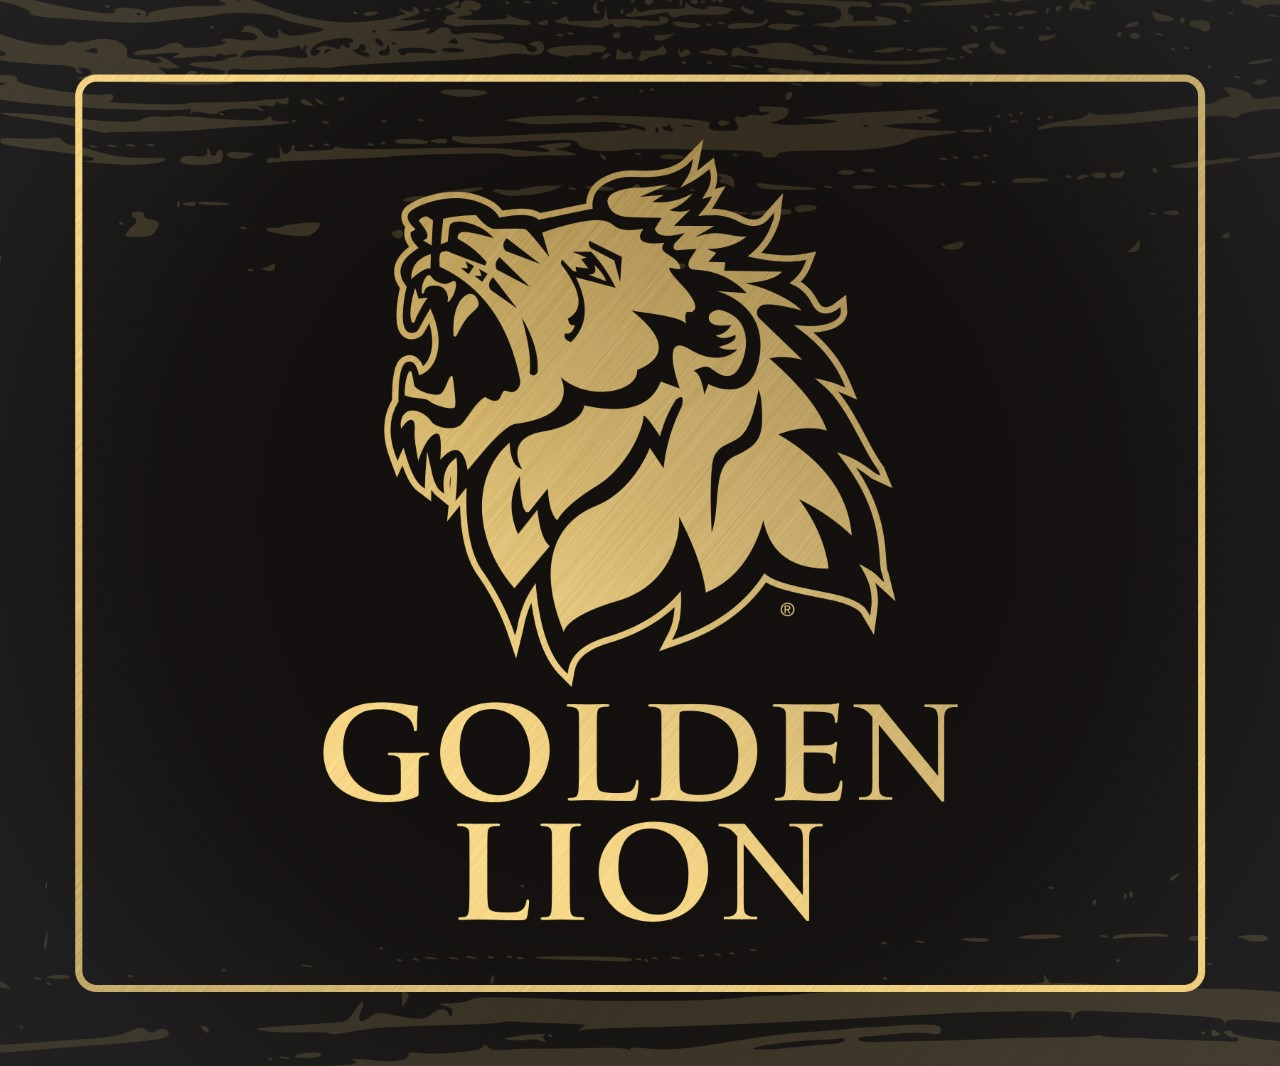 Golden Lion Award